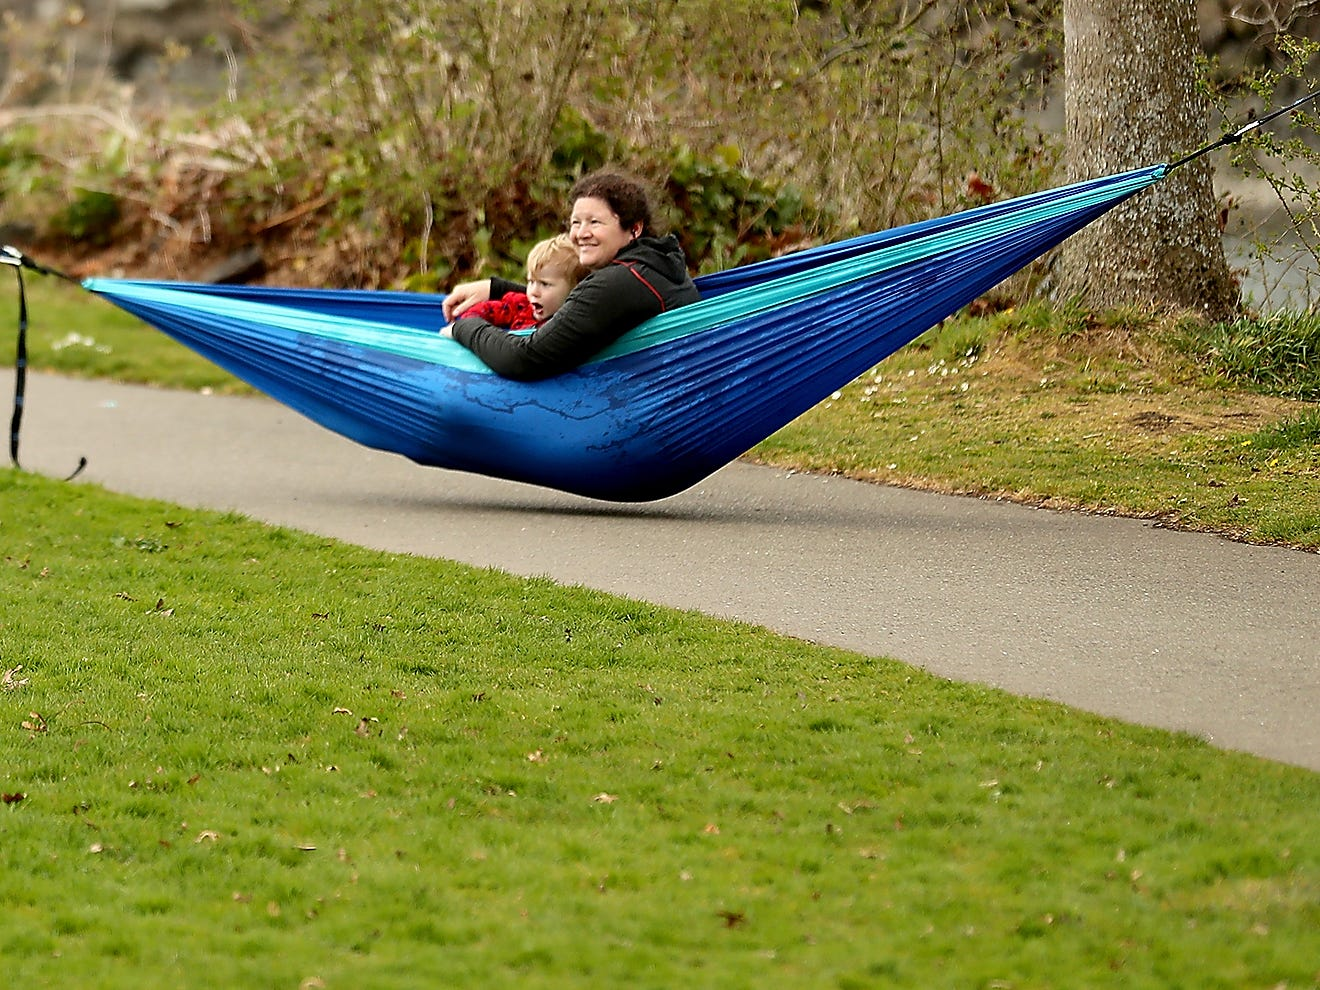 Rochelle Graham holds son Arthur, 2, in a hammock as daughter Hazel wanders over after playing in the grass at Evergreen Rotary Park in Bremerton on Wednesday, April 3, 2019.